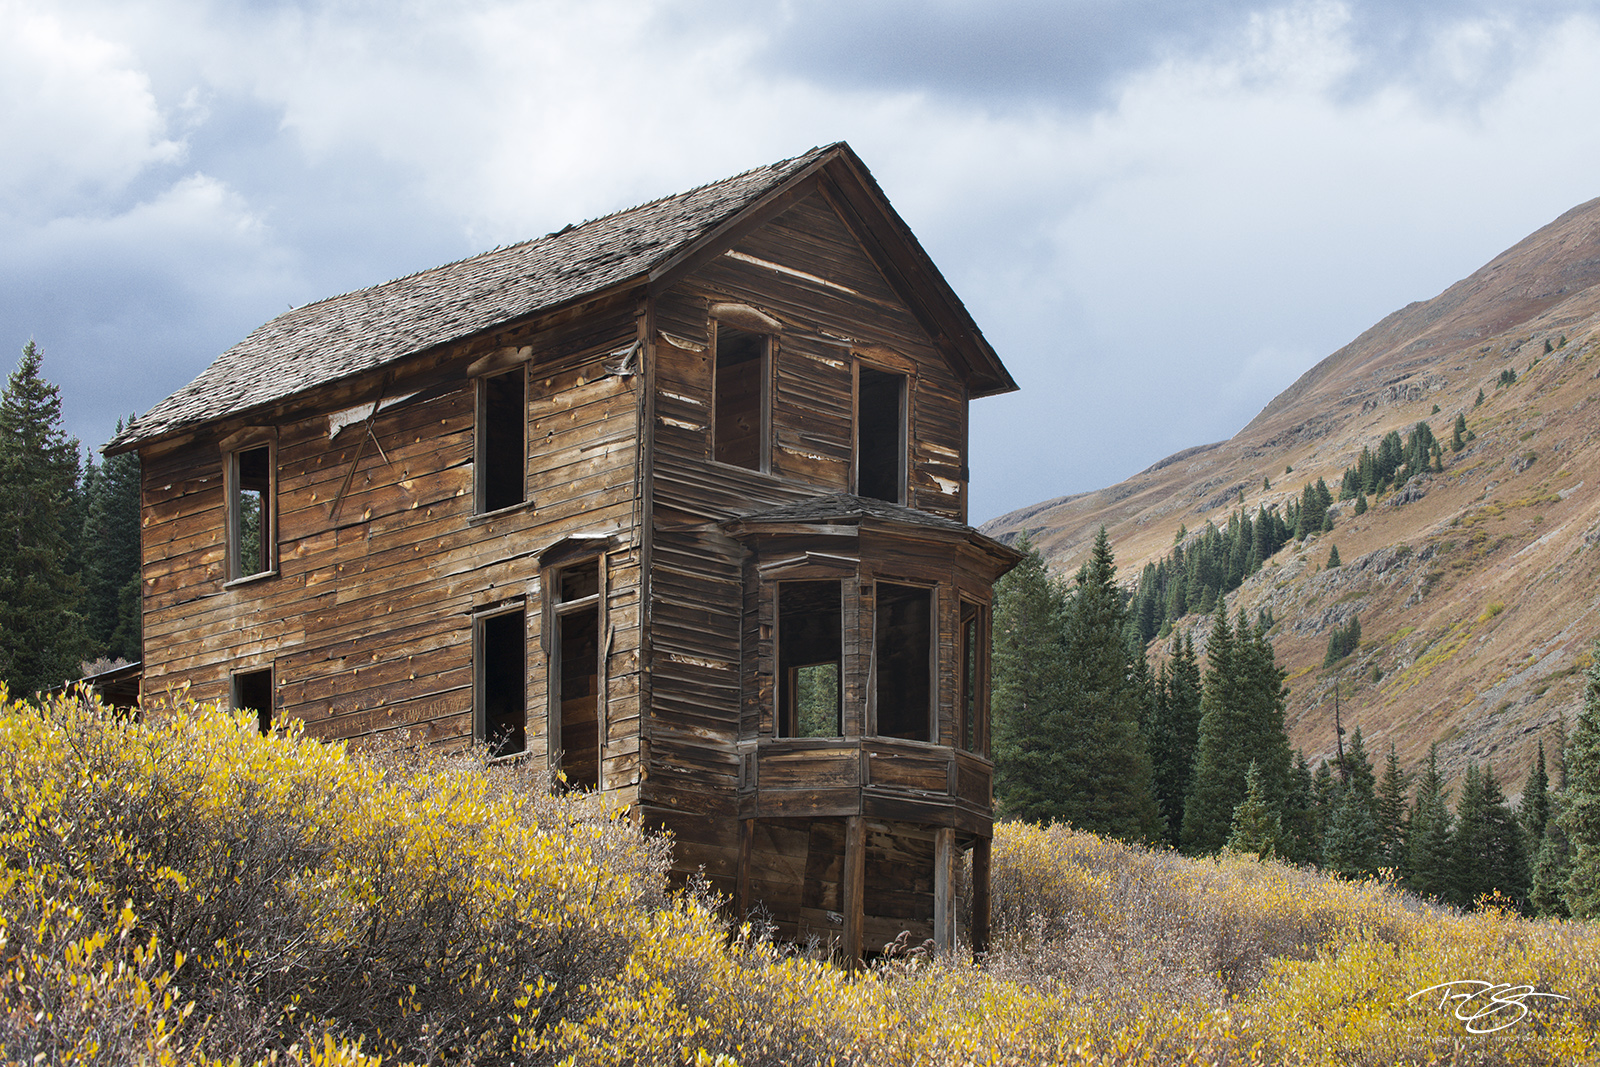 Colorado, autumn, animas forks, abandoned, wood house, home, barn, derelict, forgotten, alone, sagebrush, photo